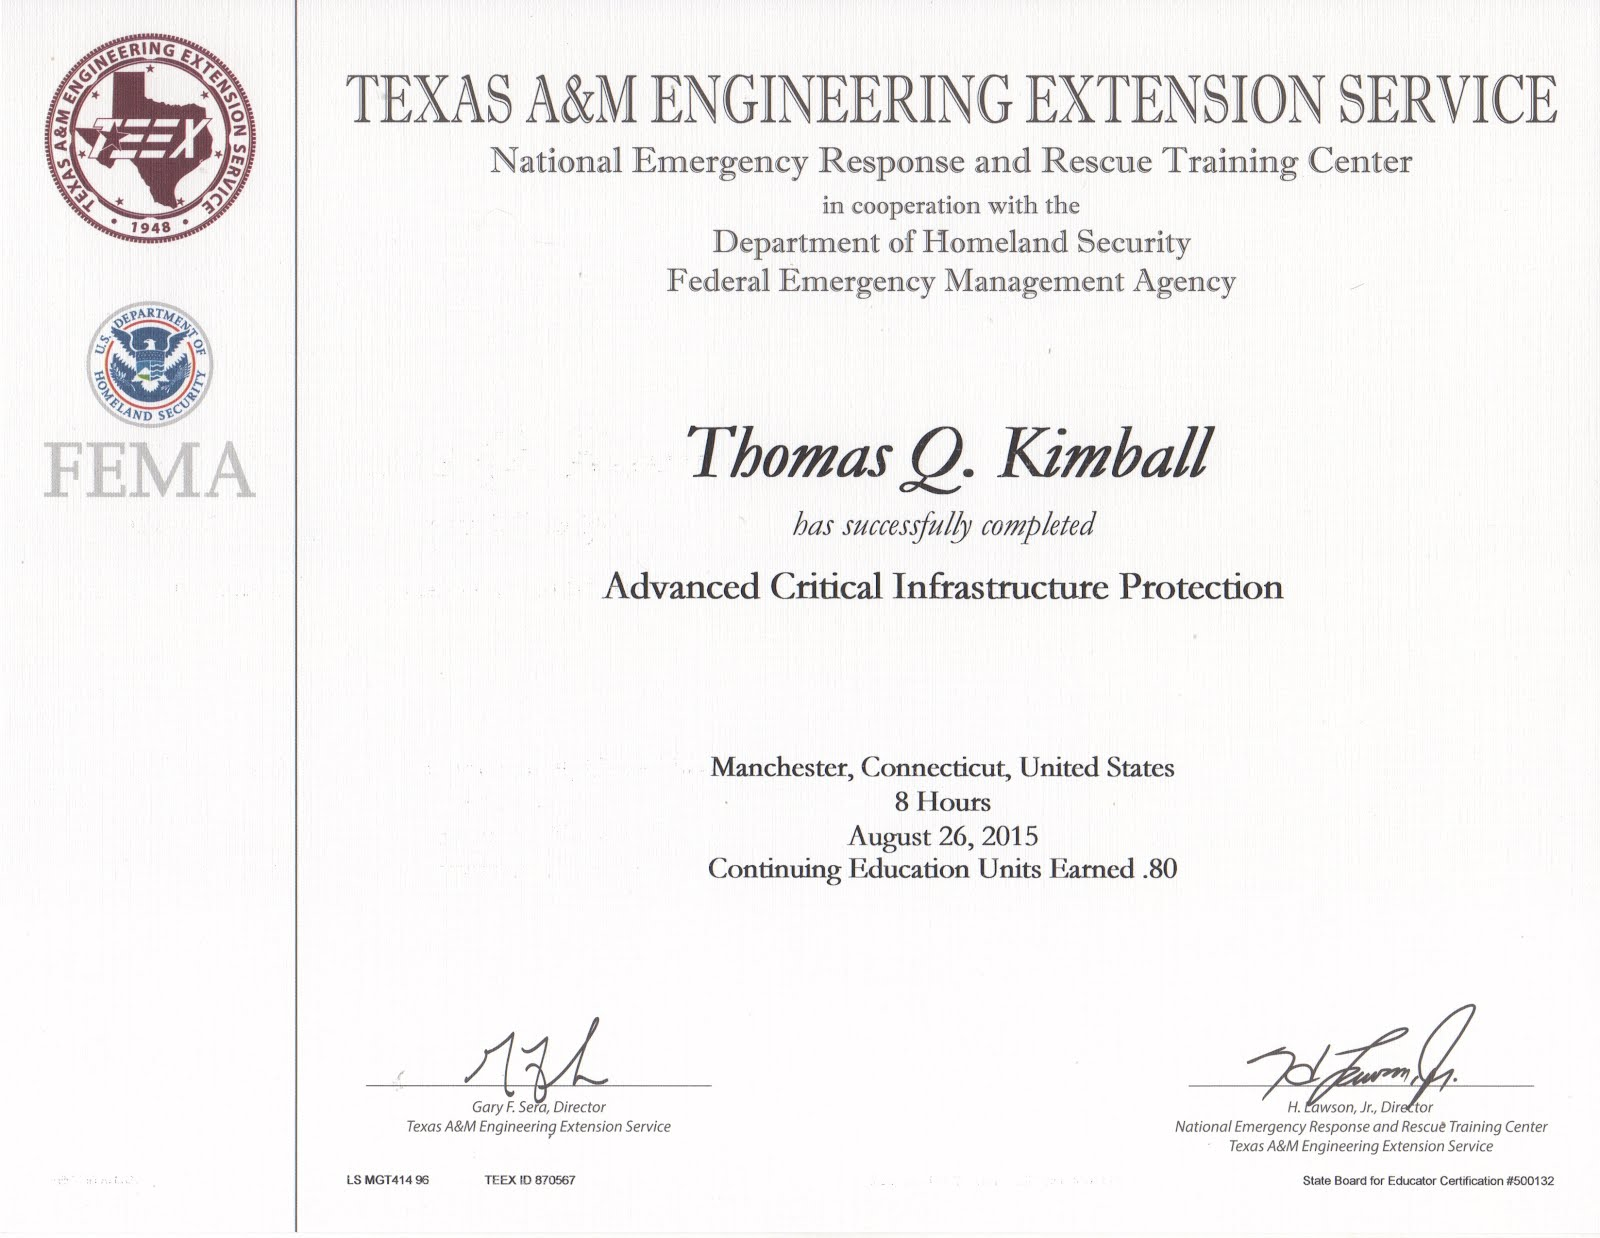 MGT-414 Advanced Critical Infrastructure Protection CIKR/ACIP Course